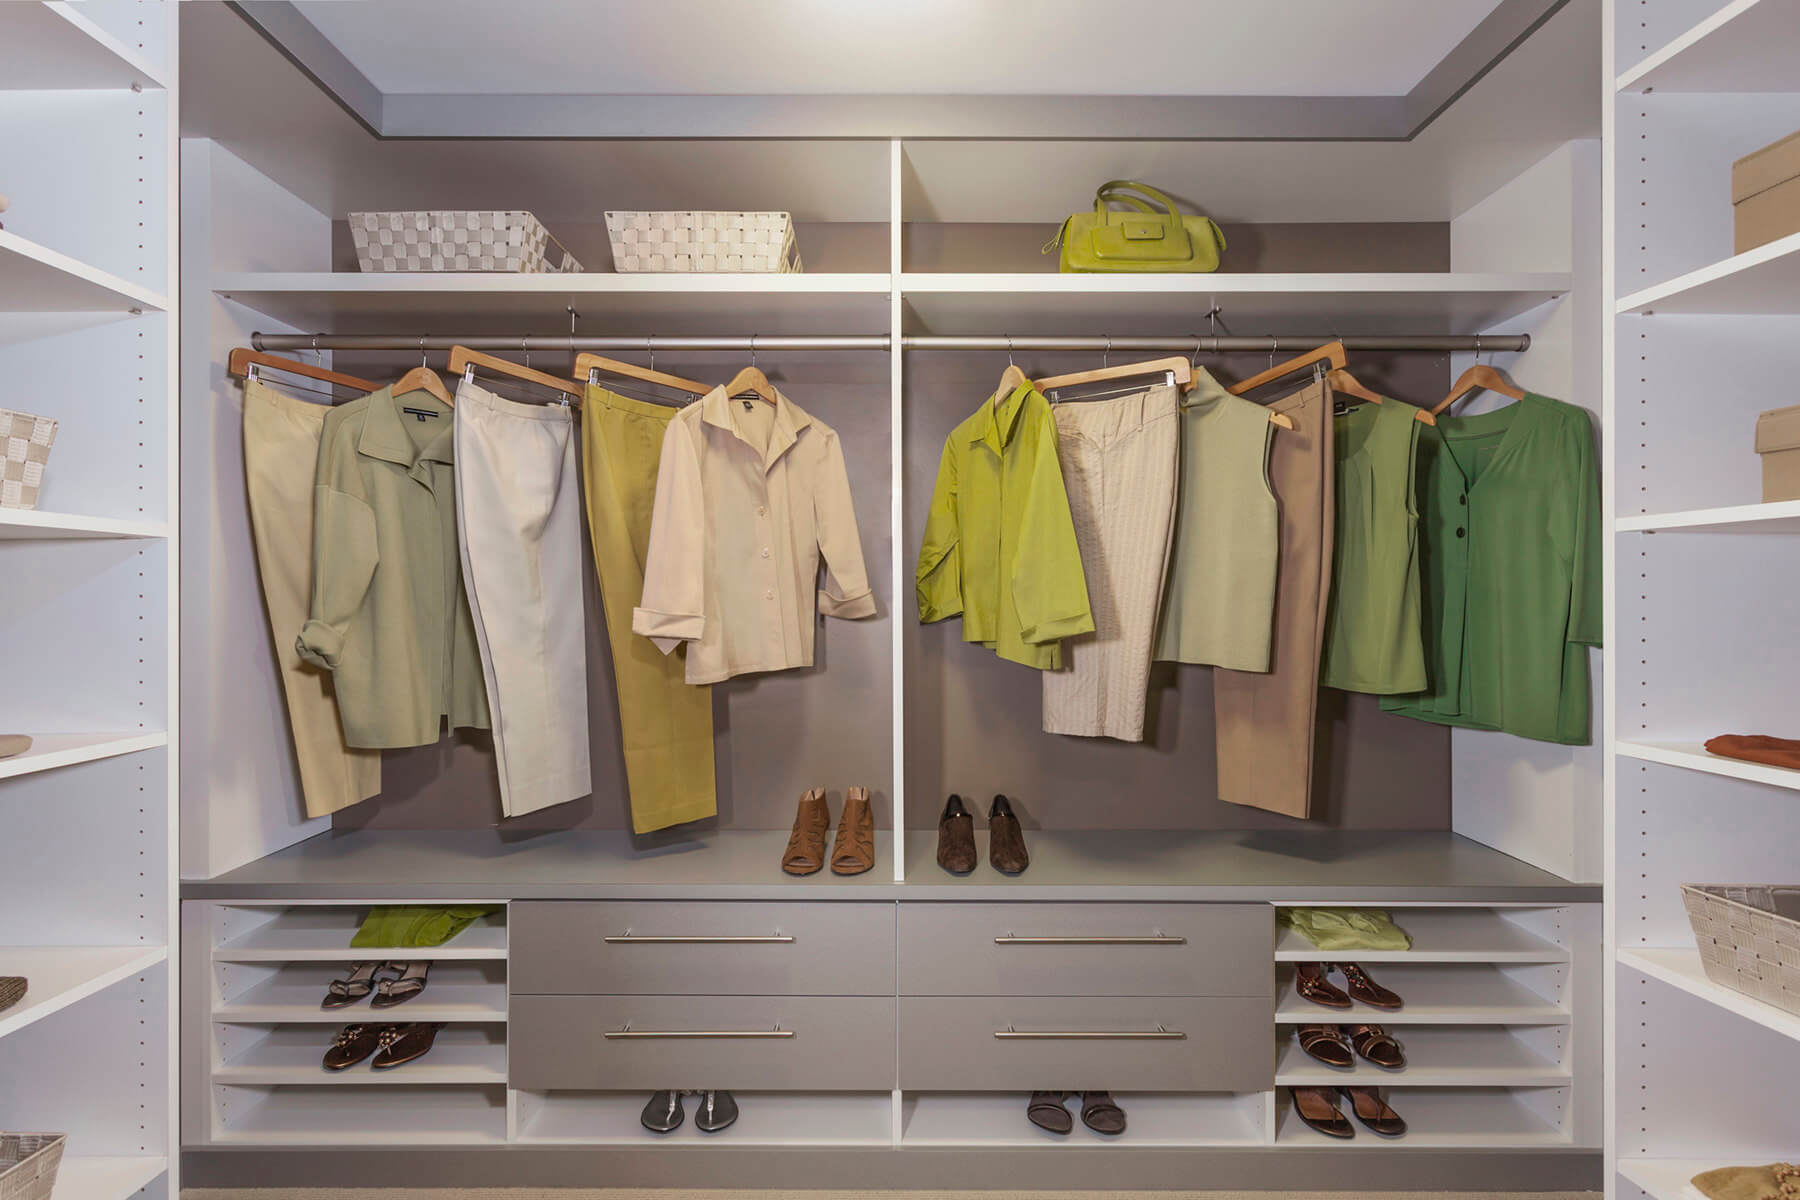 67 reach in and walk in bedroom closet storage systems for His and hers walk in closet